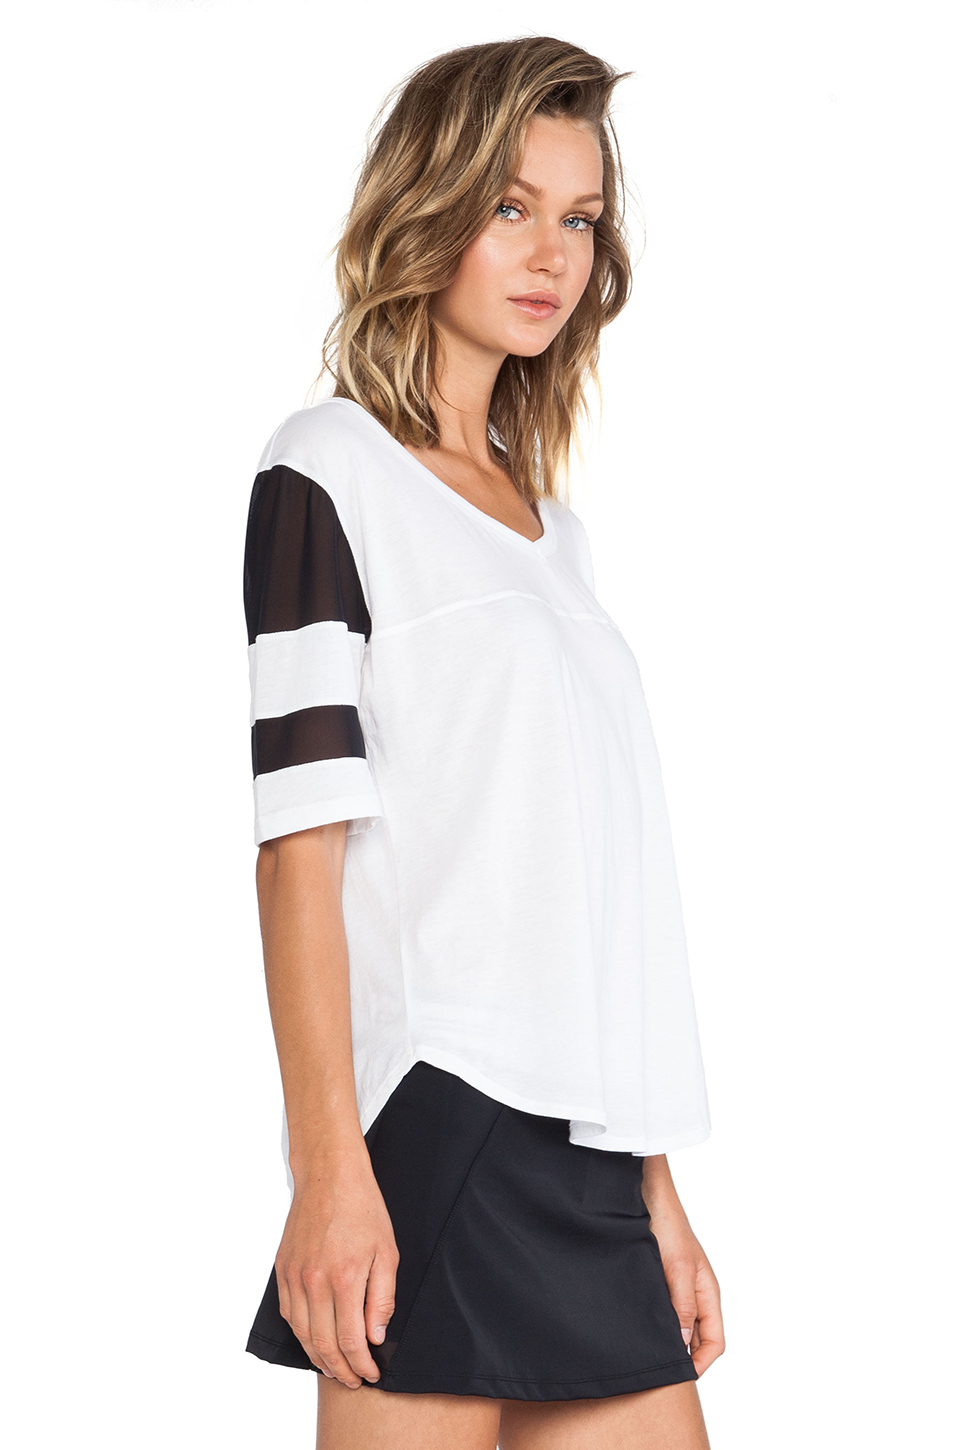 OLYMPIA Activewear Corfu Shirt in White | REVOLVE